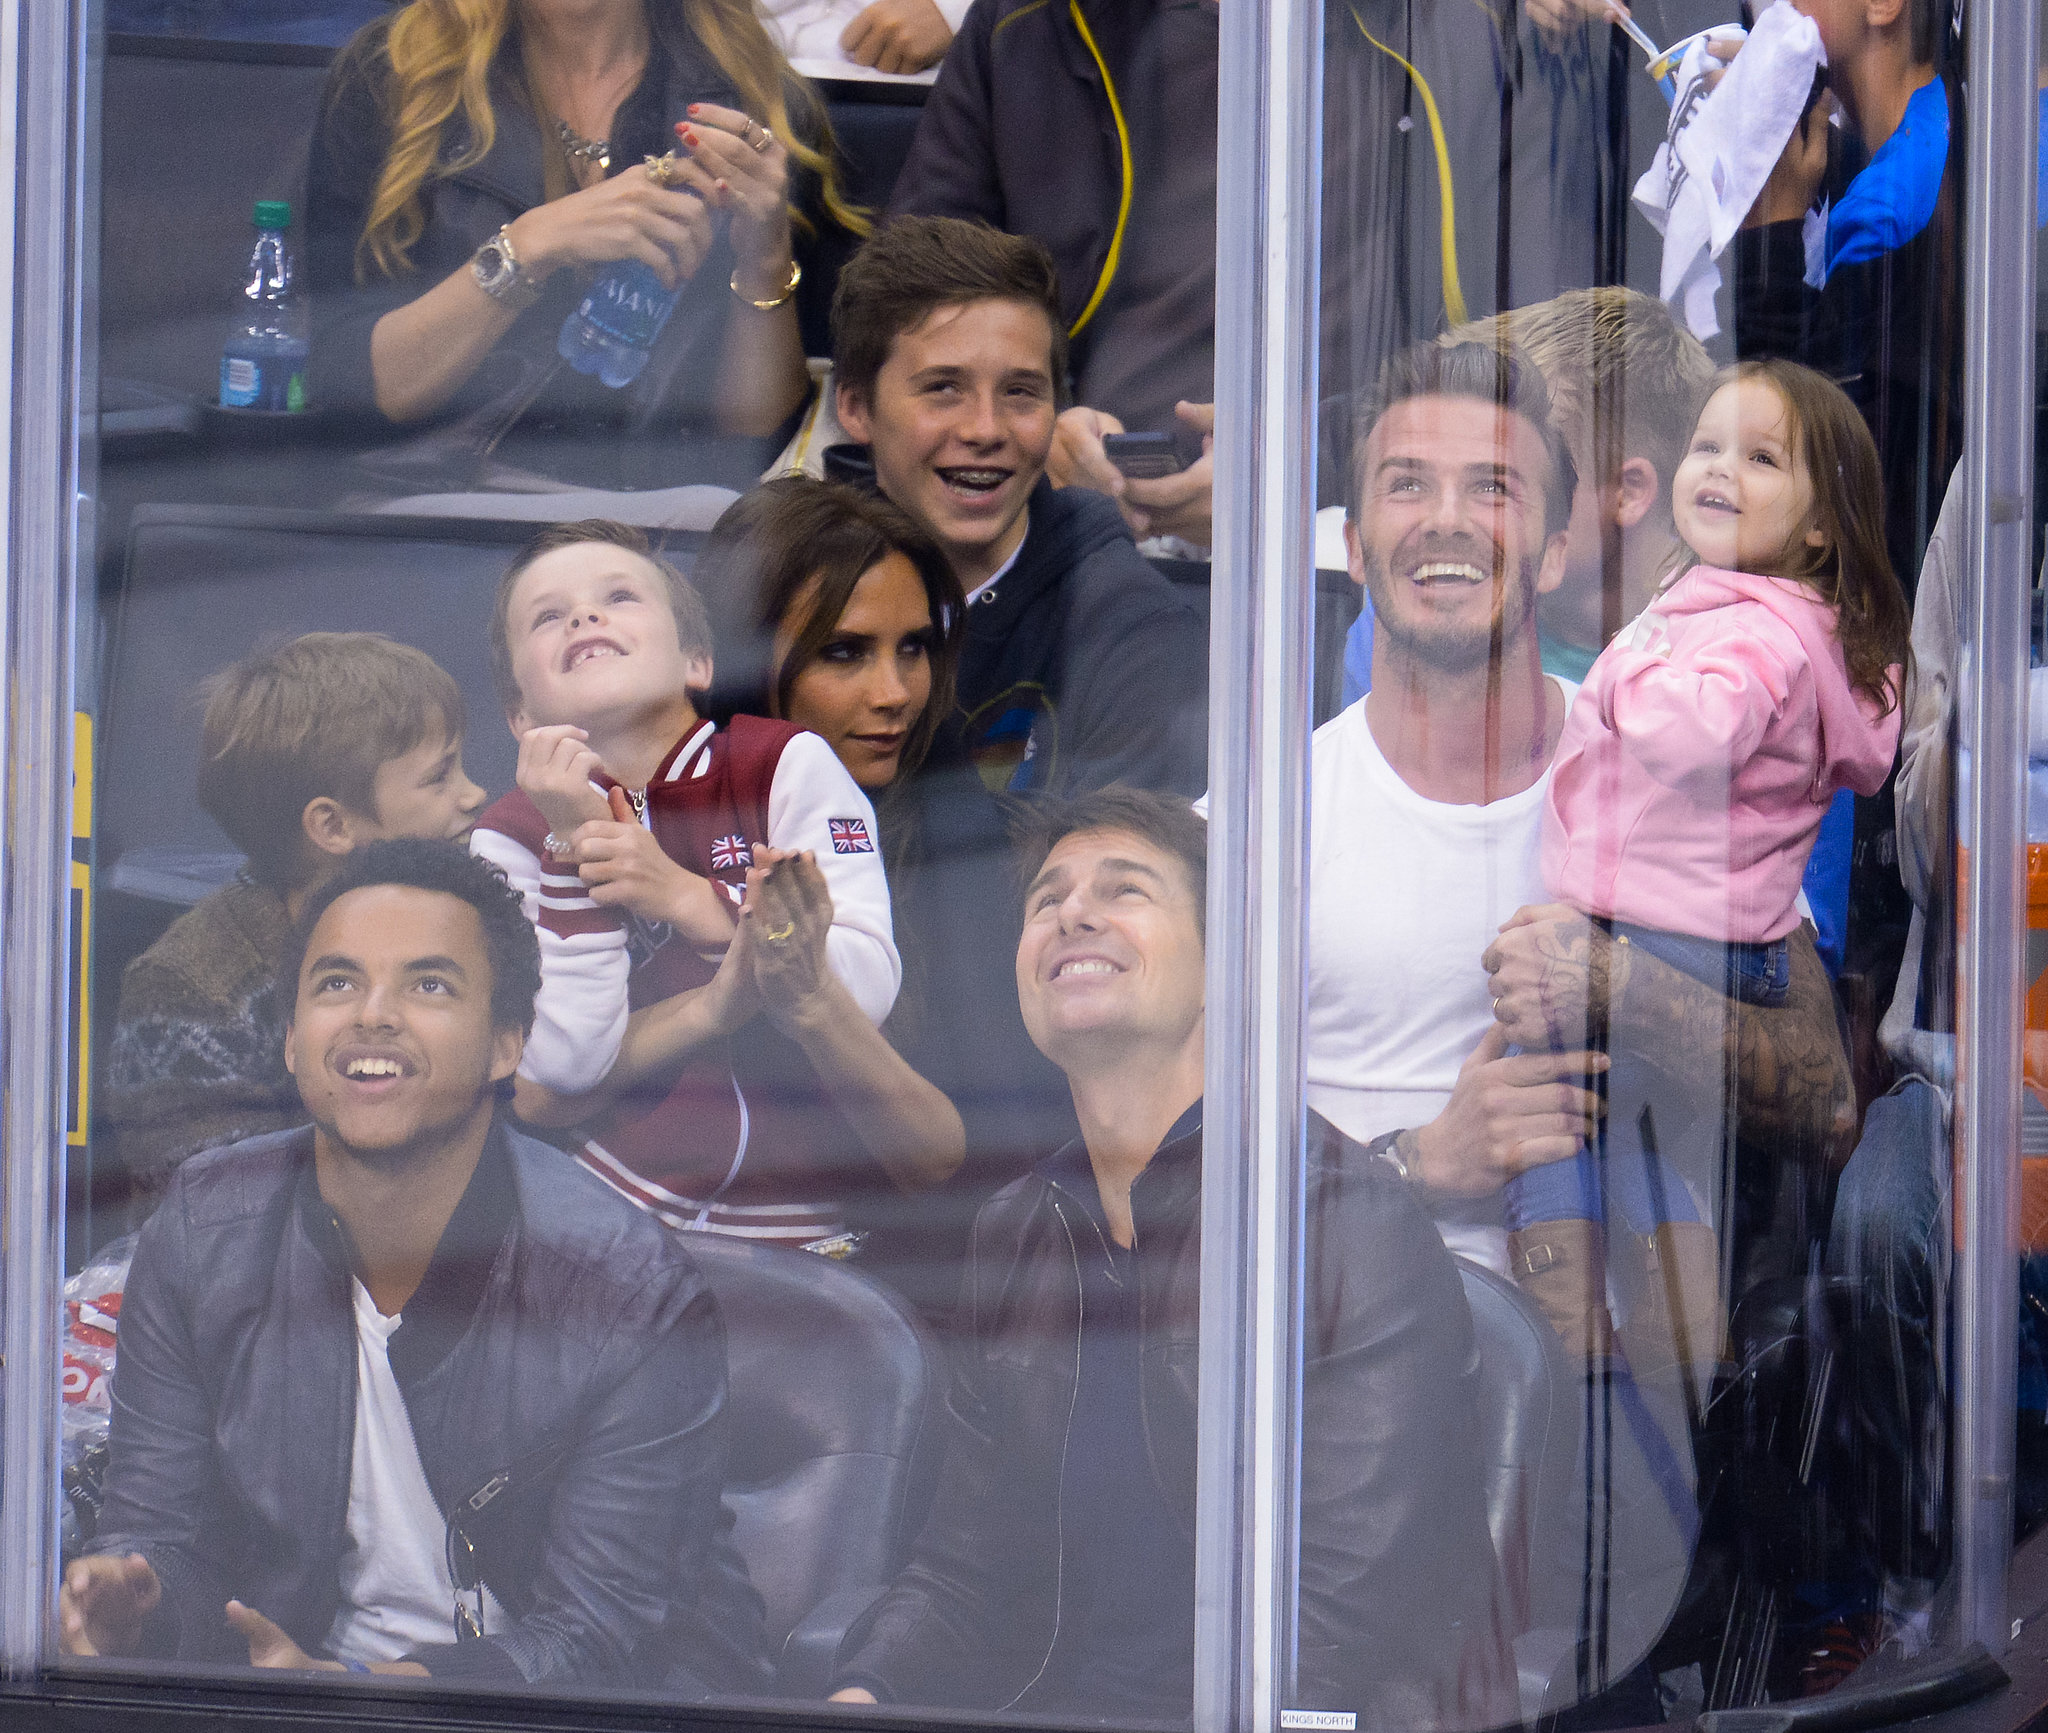 David Beckham and Victoria Beckham and their children sat with Tom Cruise and his son, Conner, at the LA Kings game.